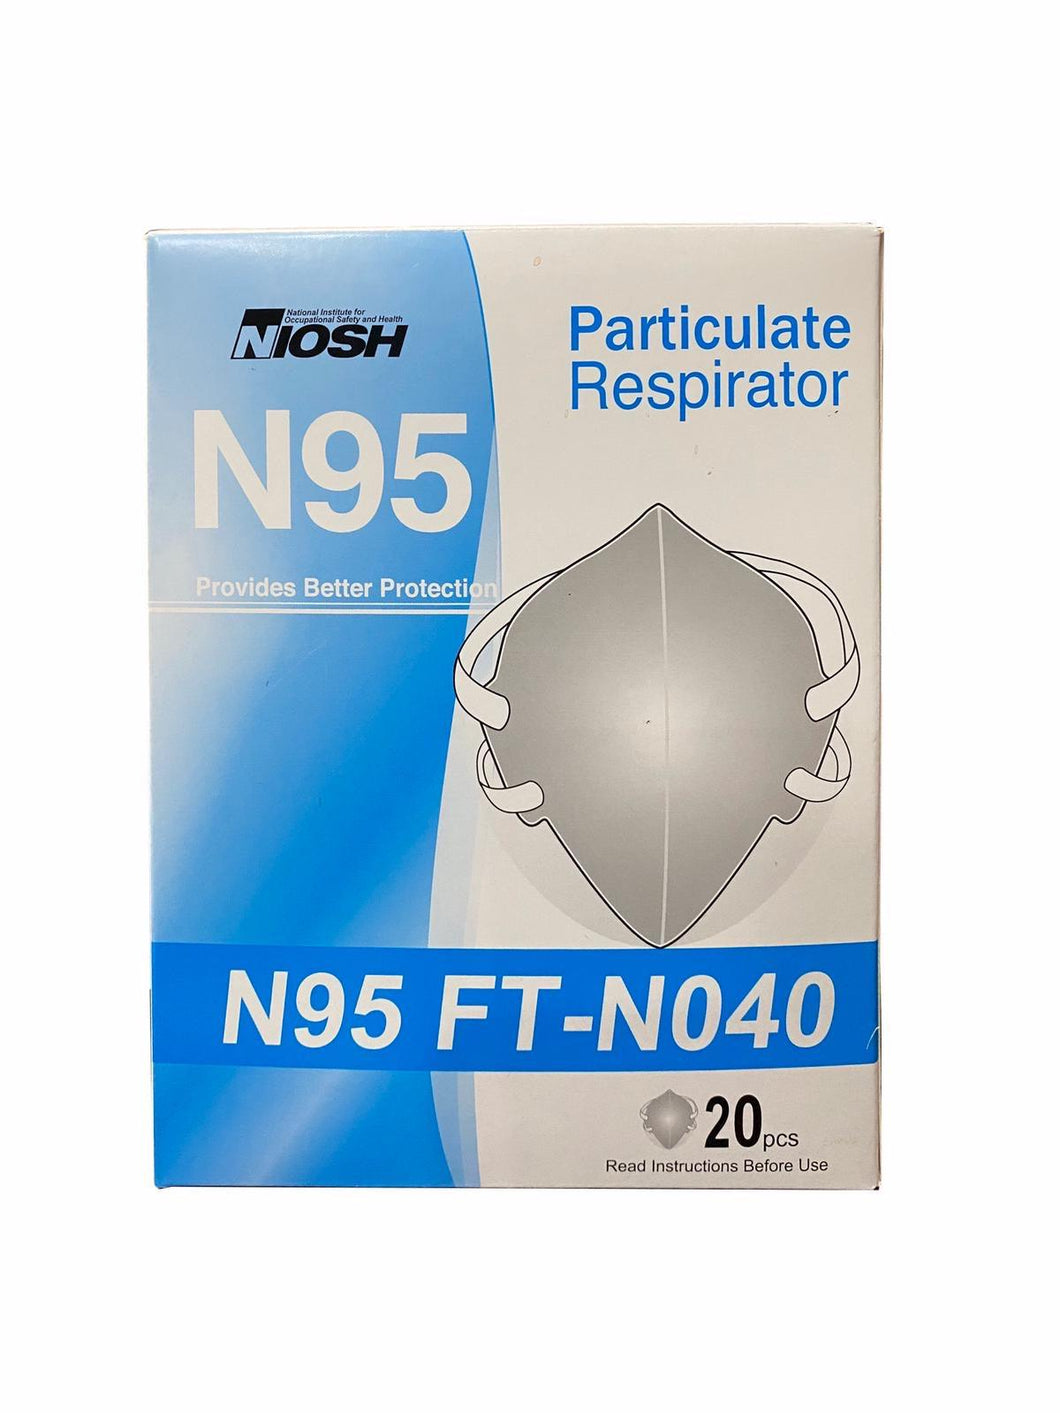 NIOSH N95 FT-N040 Particulate Respirator Masks (20 PCS)